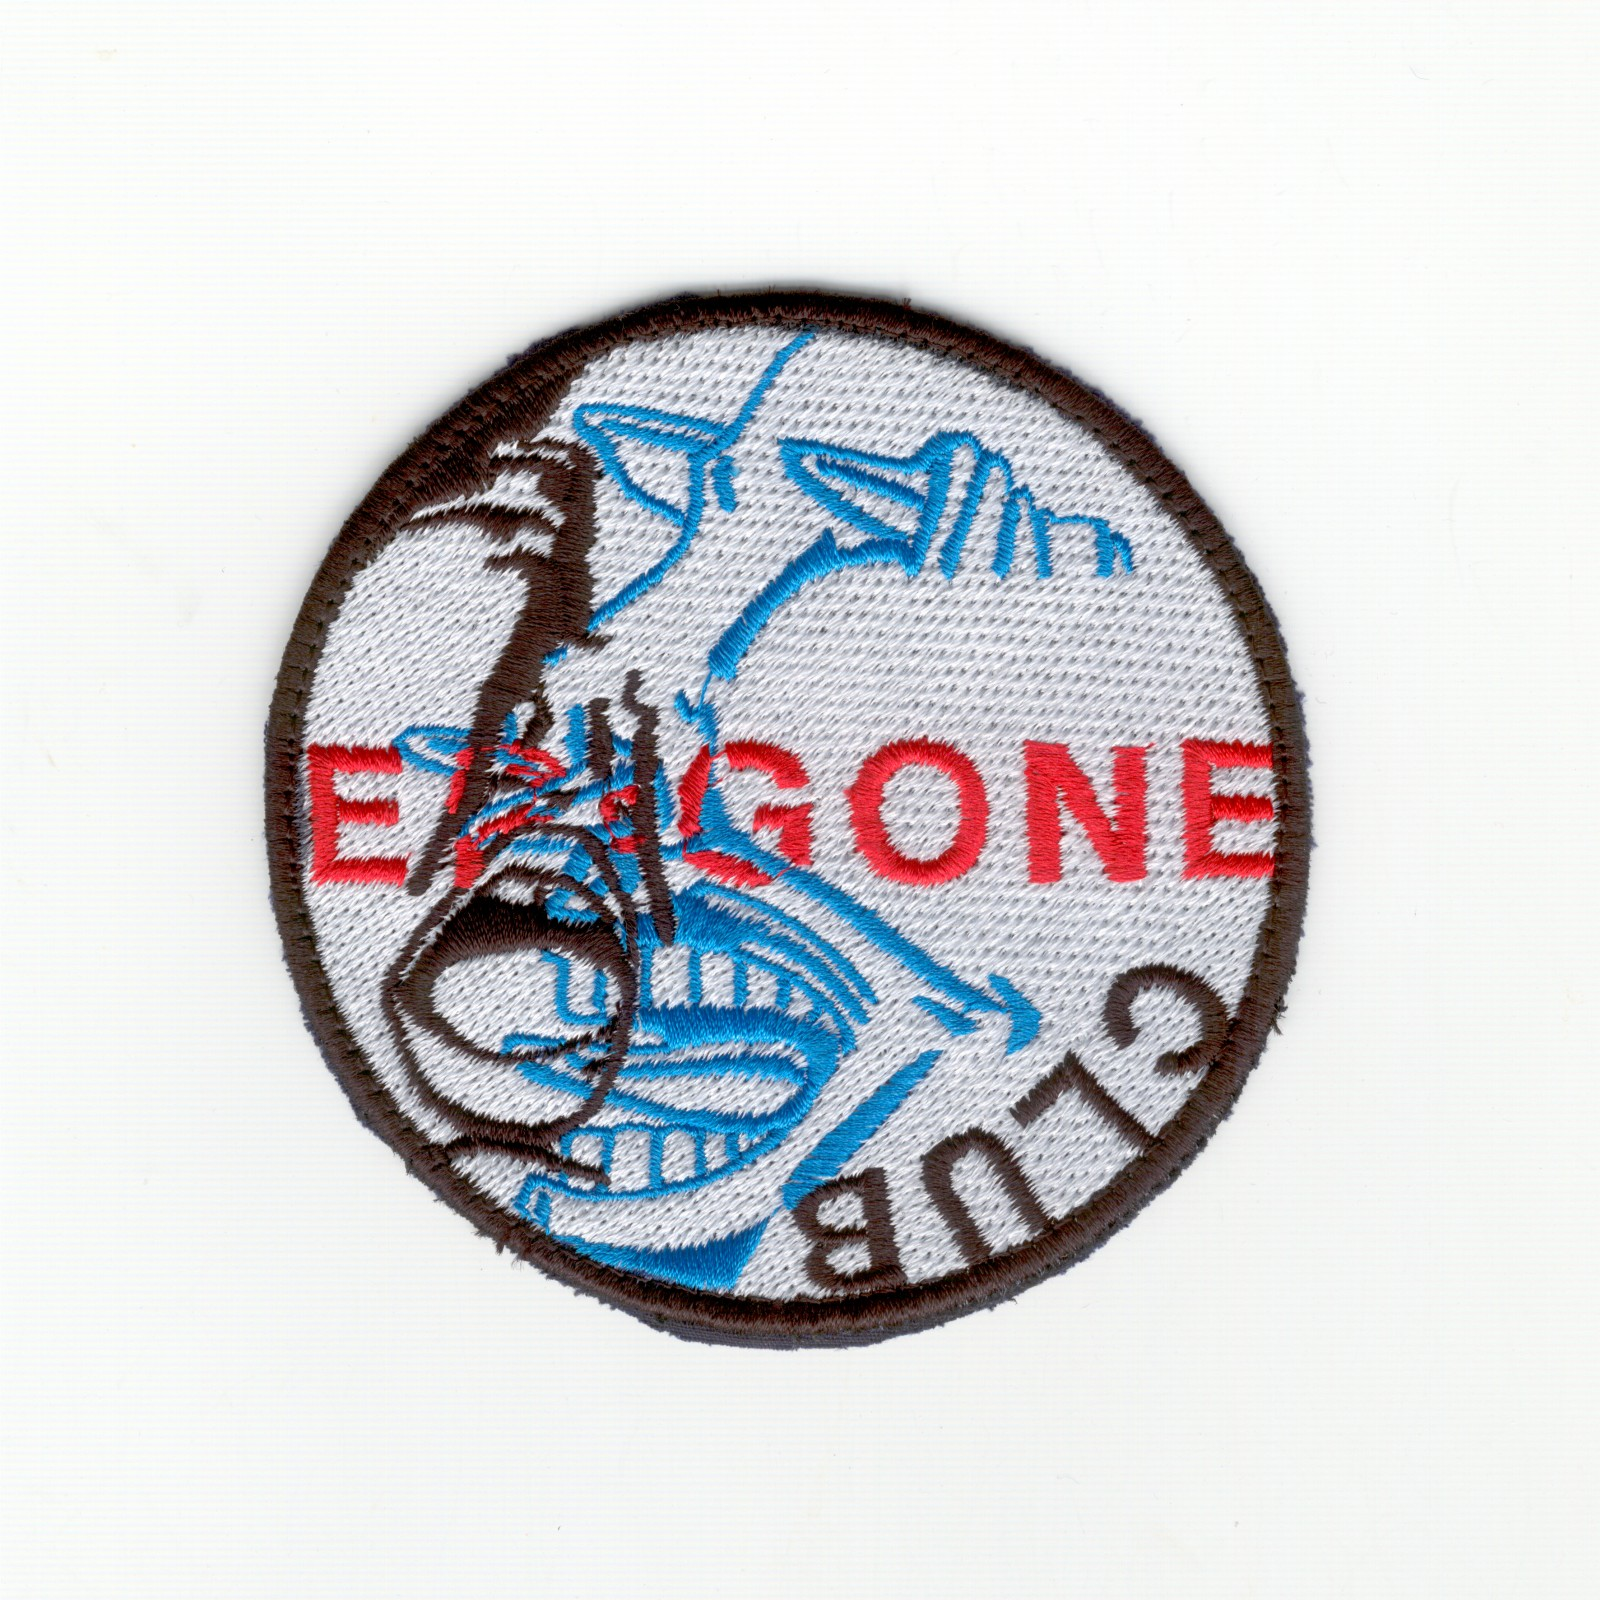 EPIGONE CLUB scans broderie 03